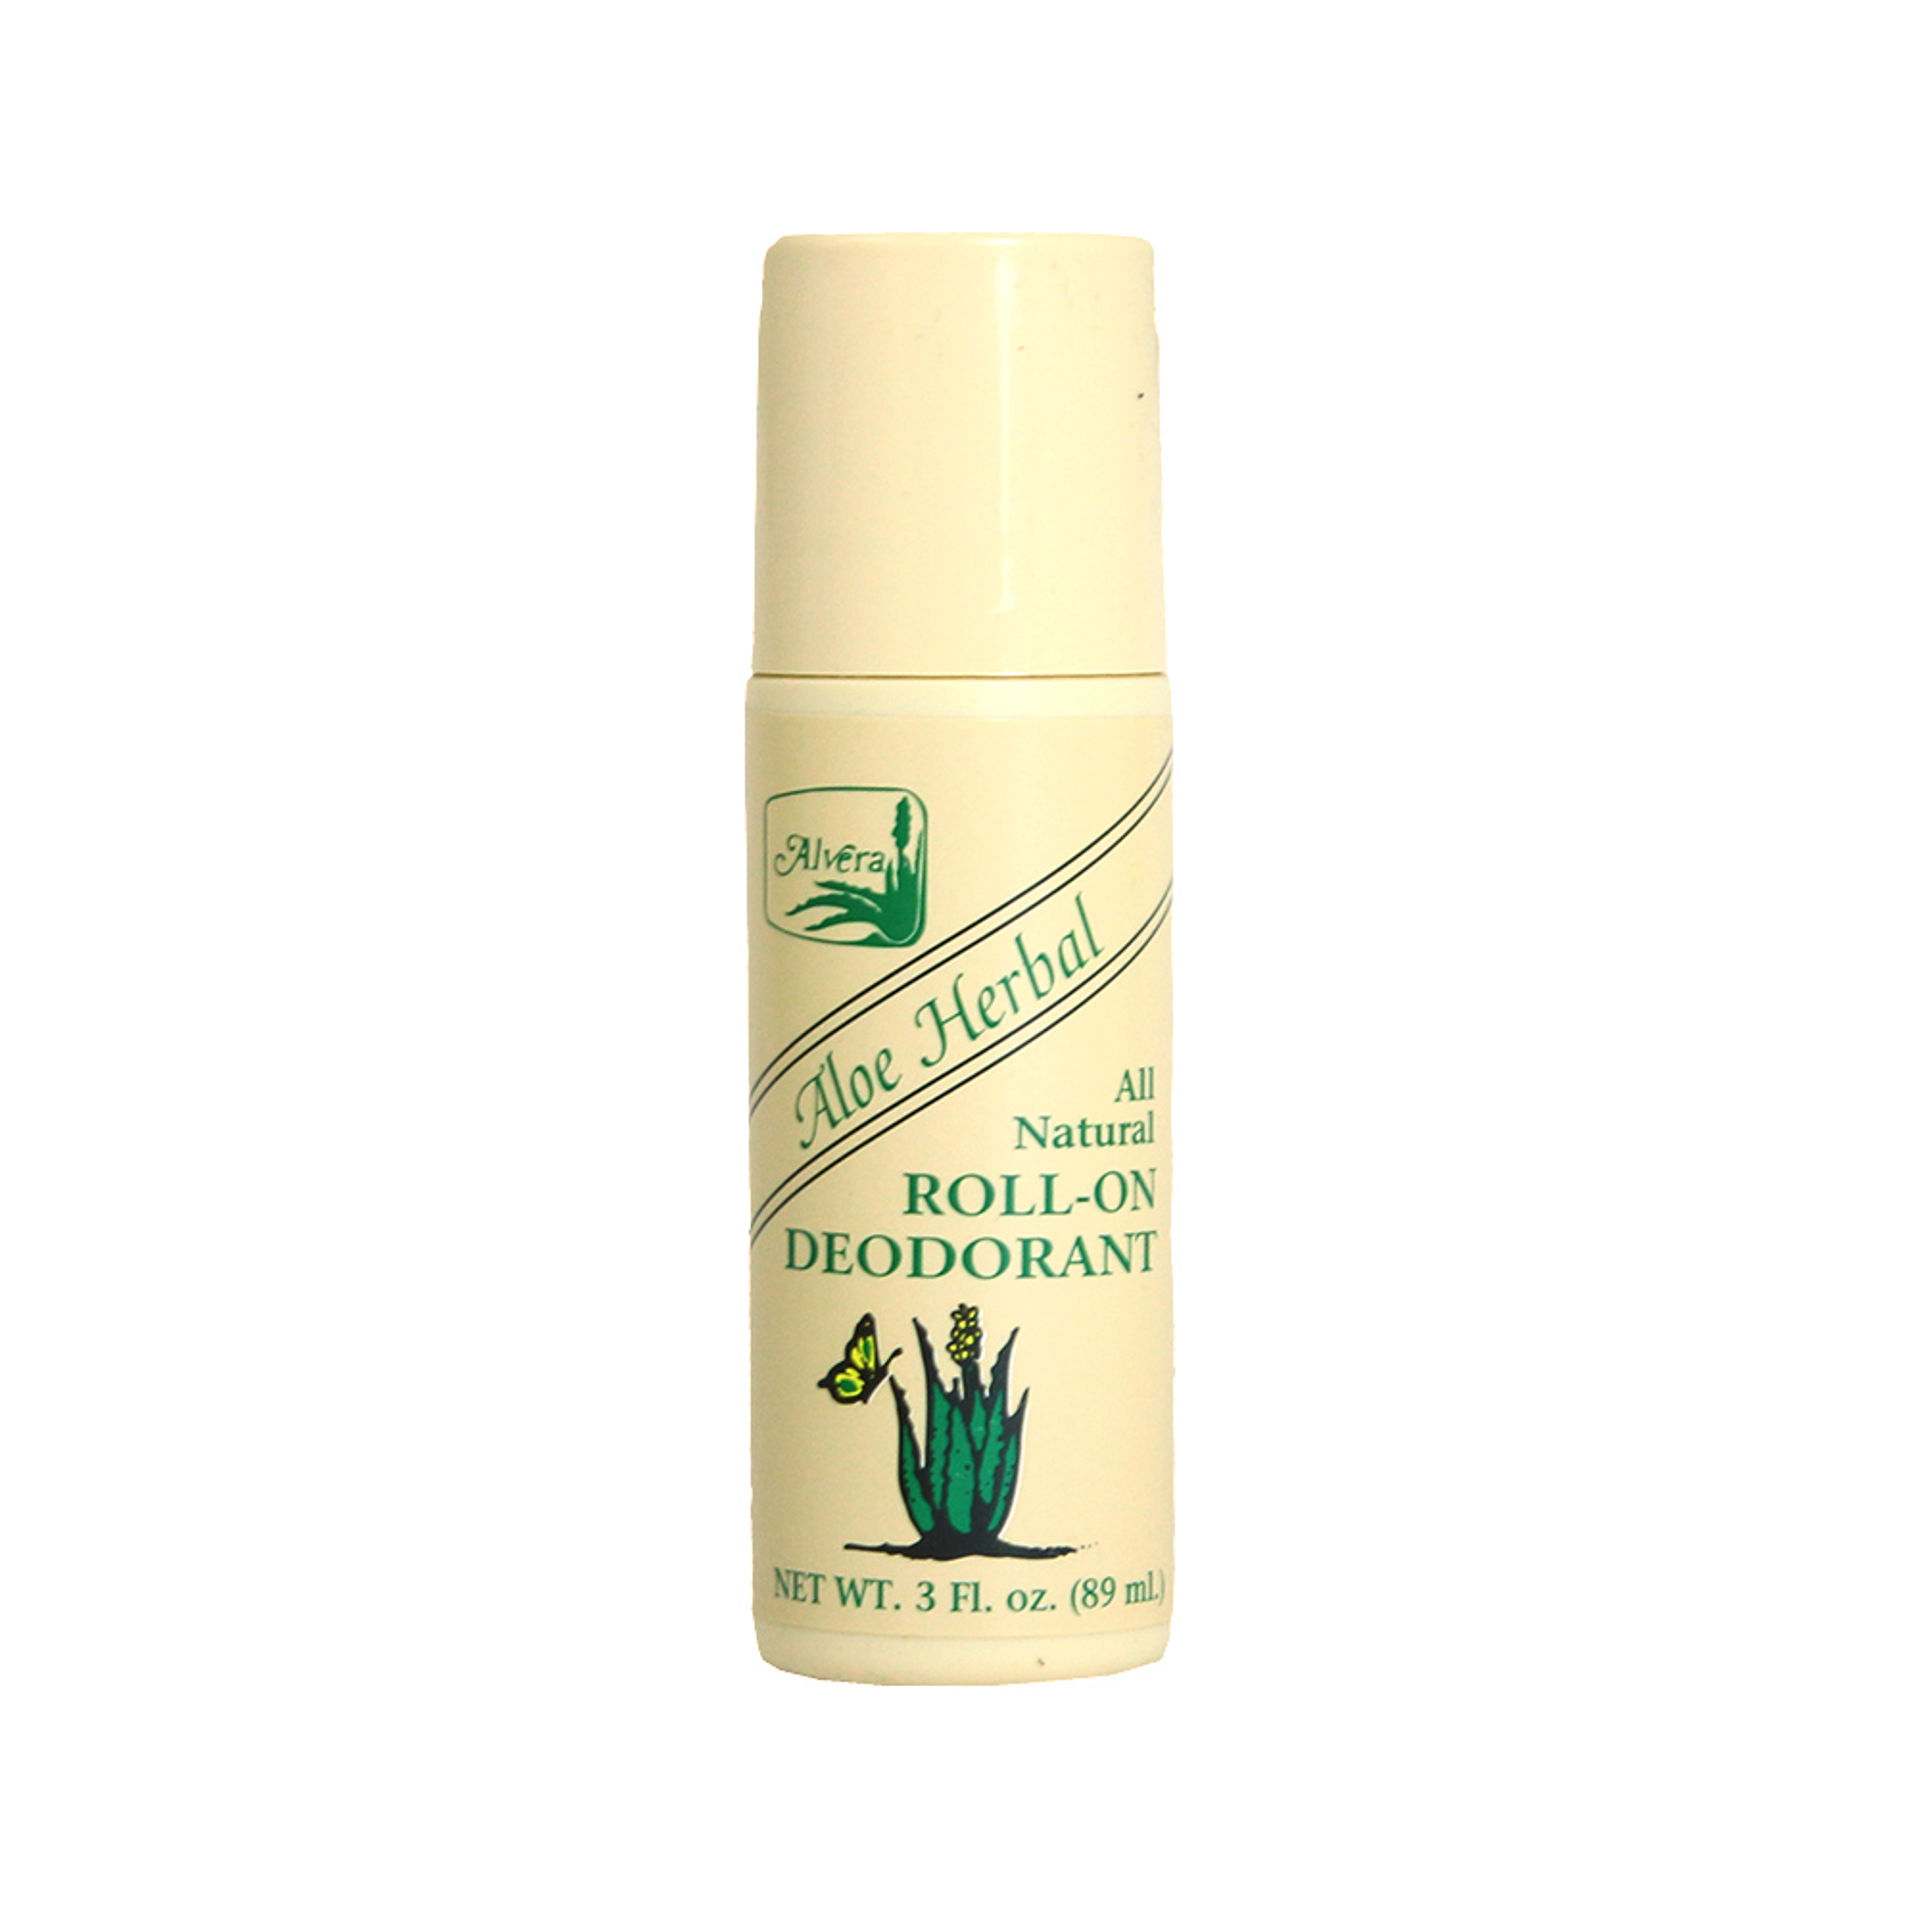 Picture of All Natural Deodorant: Aloe Herbal